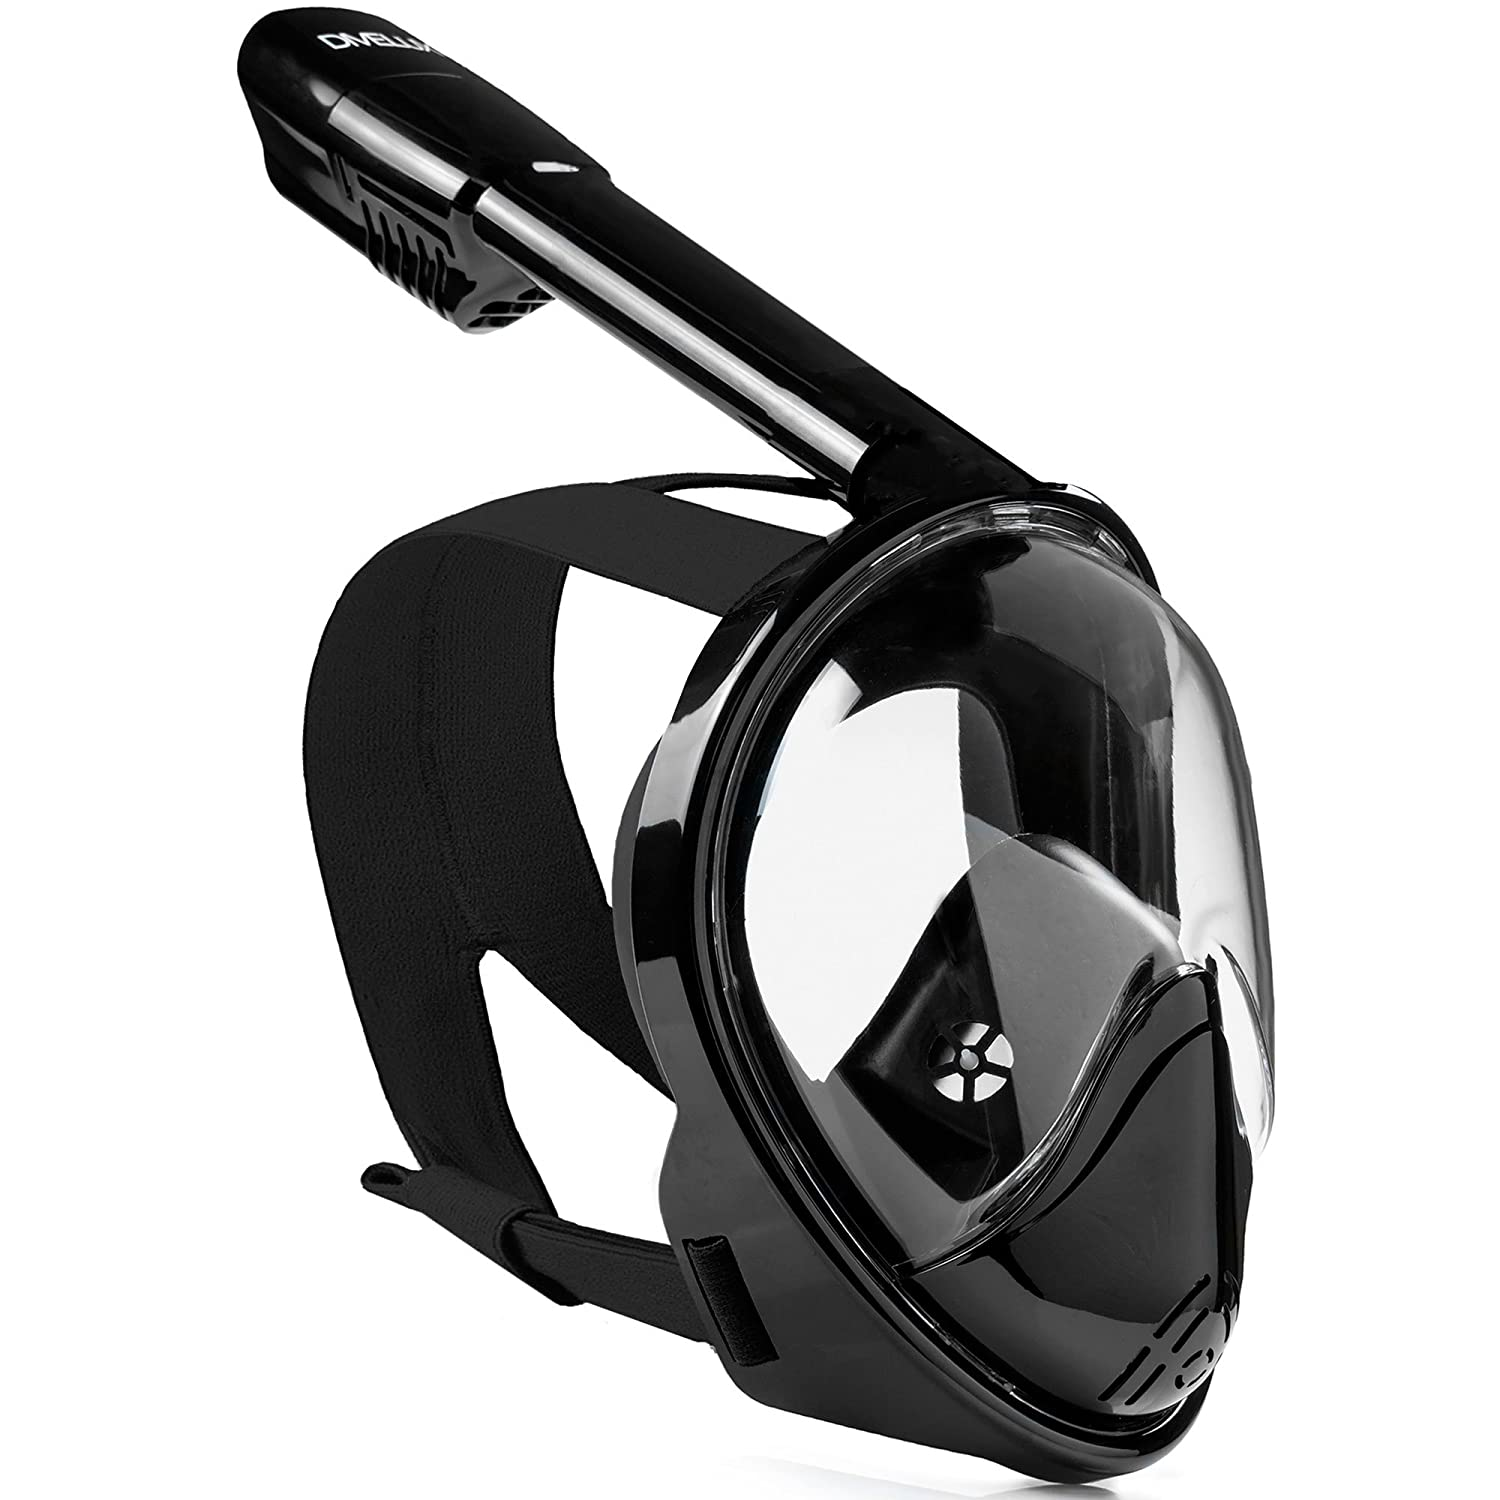 5. Divelux Snorkel Mask Original Full Face